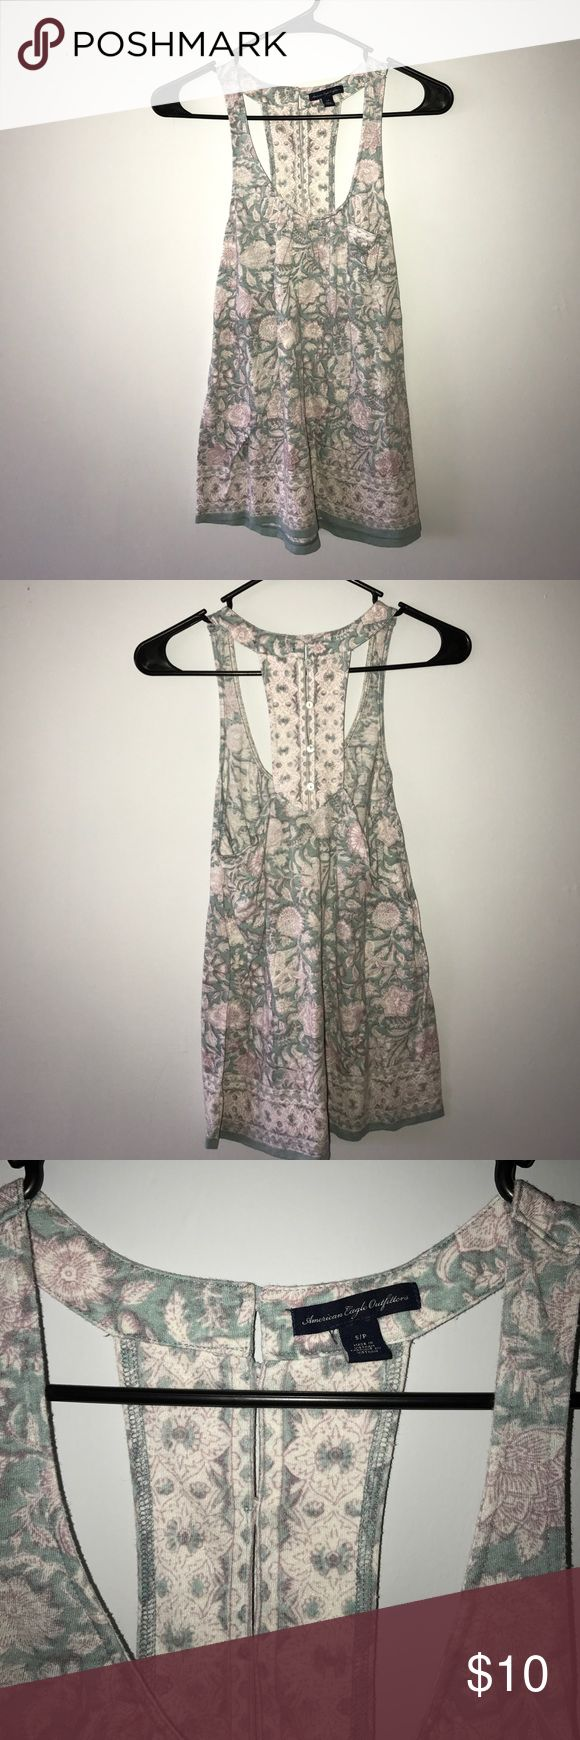 American eagle top Floral American eagle top size small American Eagle Outfitters Tops